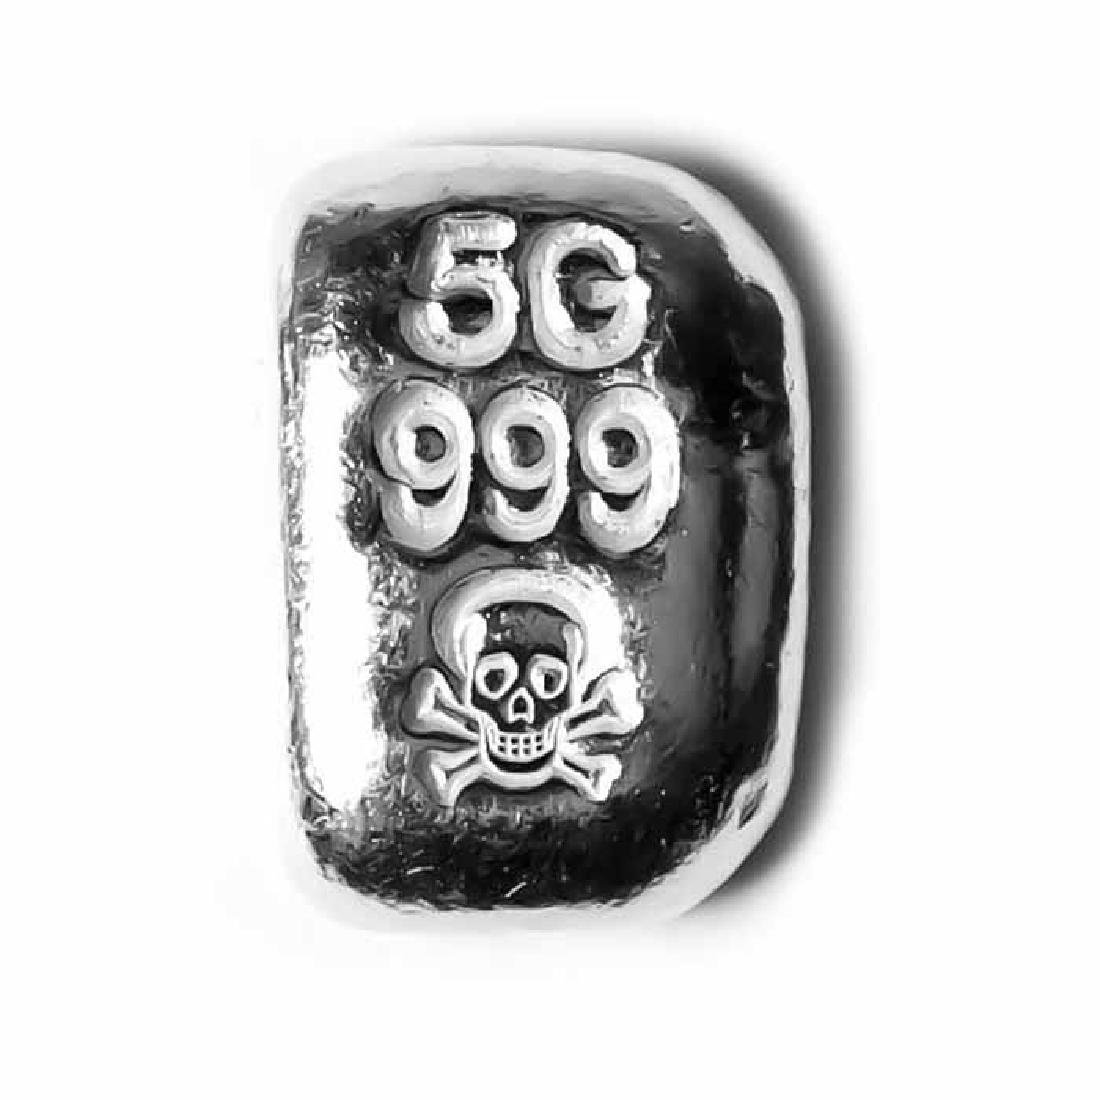 5 Gram Atlantis Skull and Crossbones Hand Poured Silver